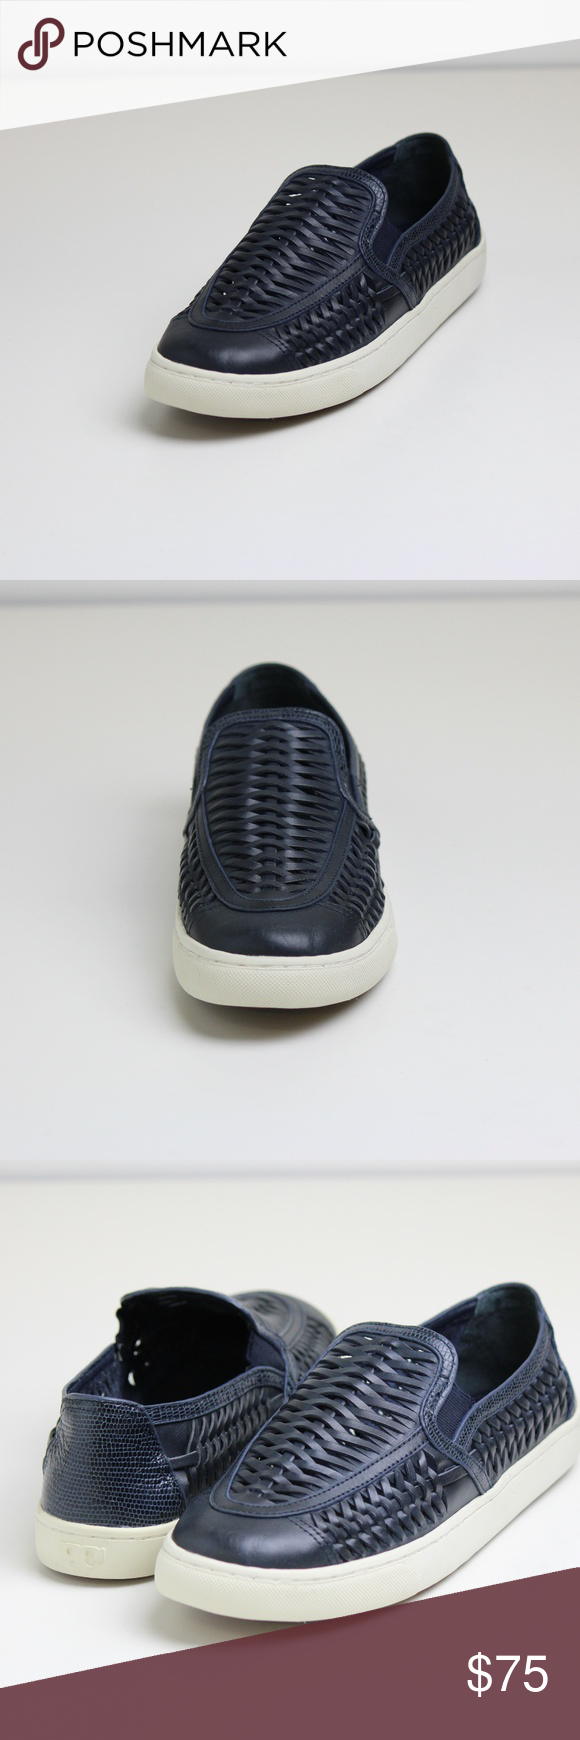 b6899cb68e1f Tory Burch Navy Huarache Slip-On Sneakers Show off your stand out style in  these unique woven leather slip-on sneakers from Tory Burch. Tory Burch  Shoes ...